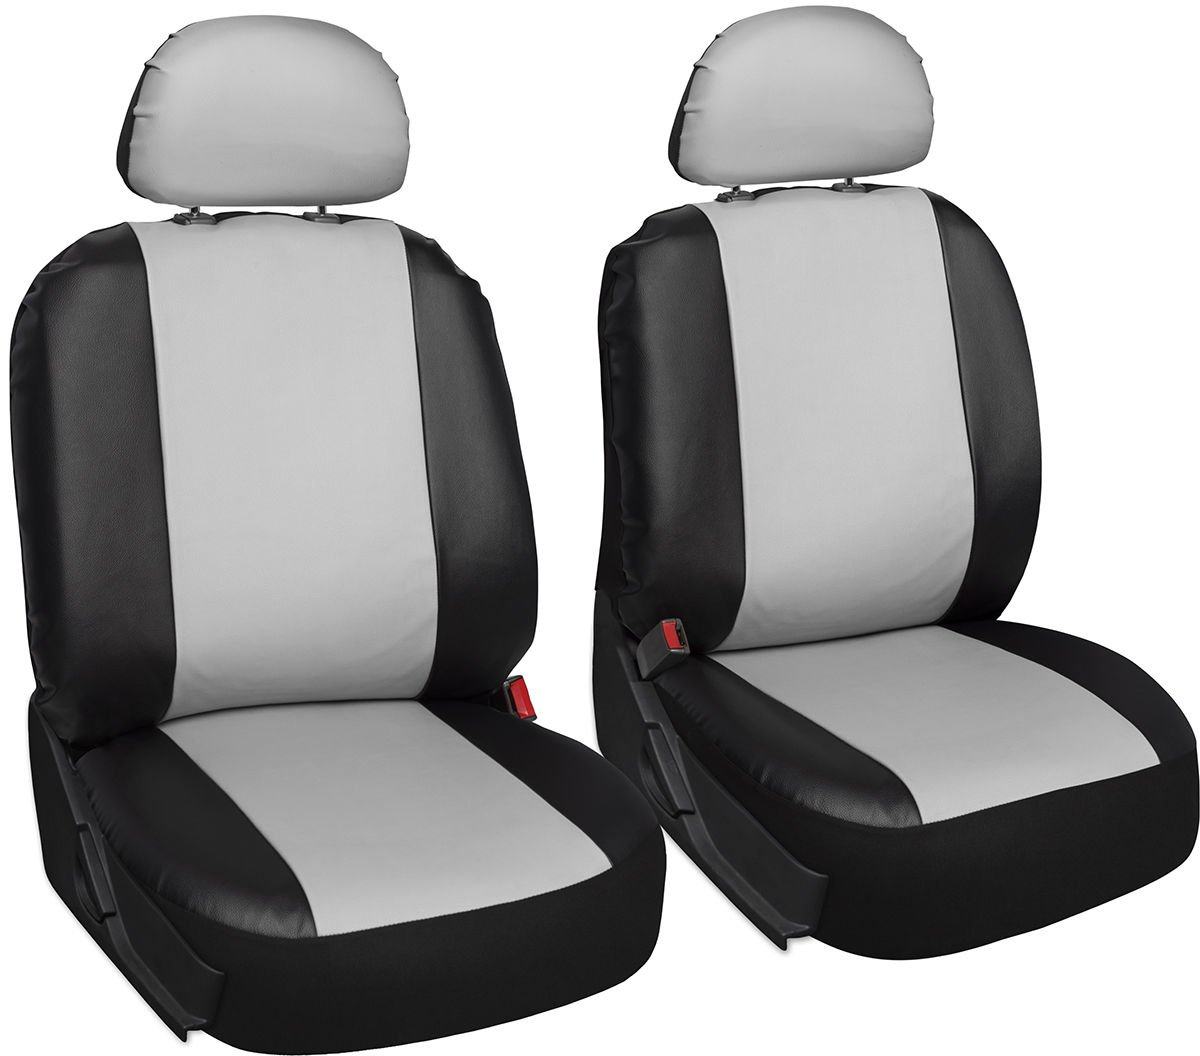 Faux Leather White Black Seat Bucket for Toyota Tacoma w/Detachable Head Rests